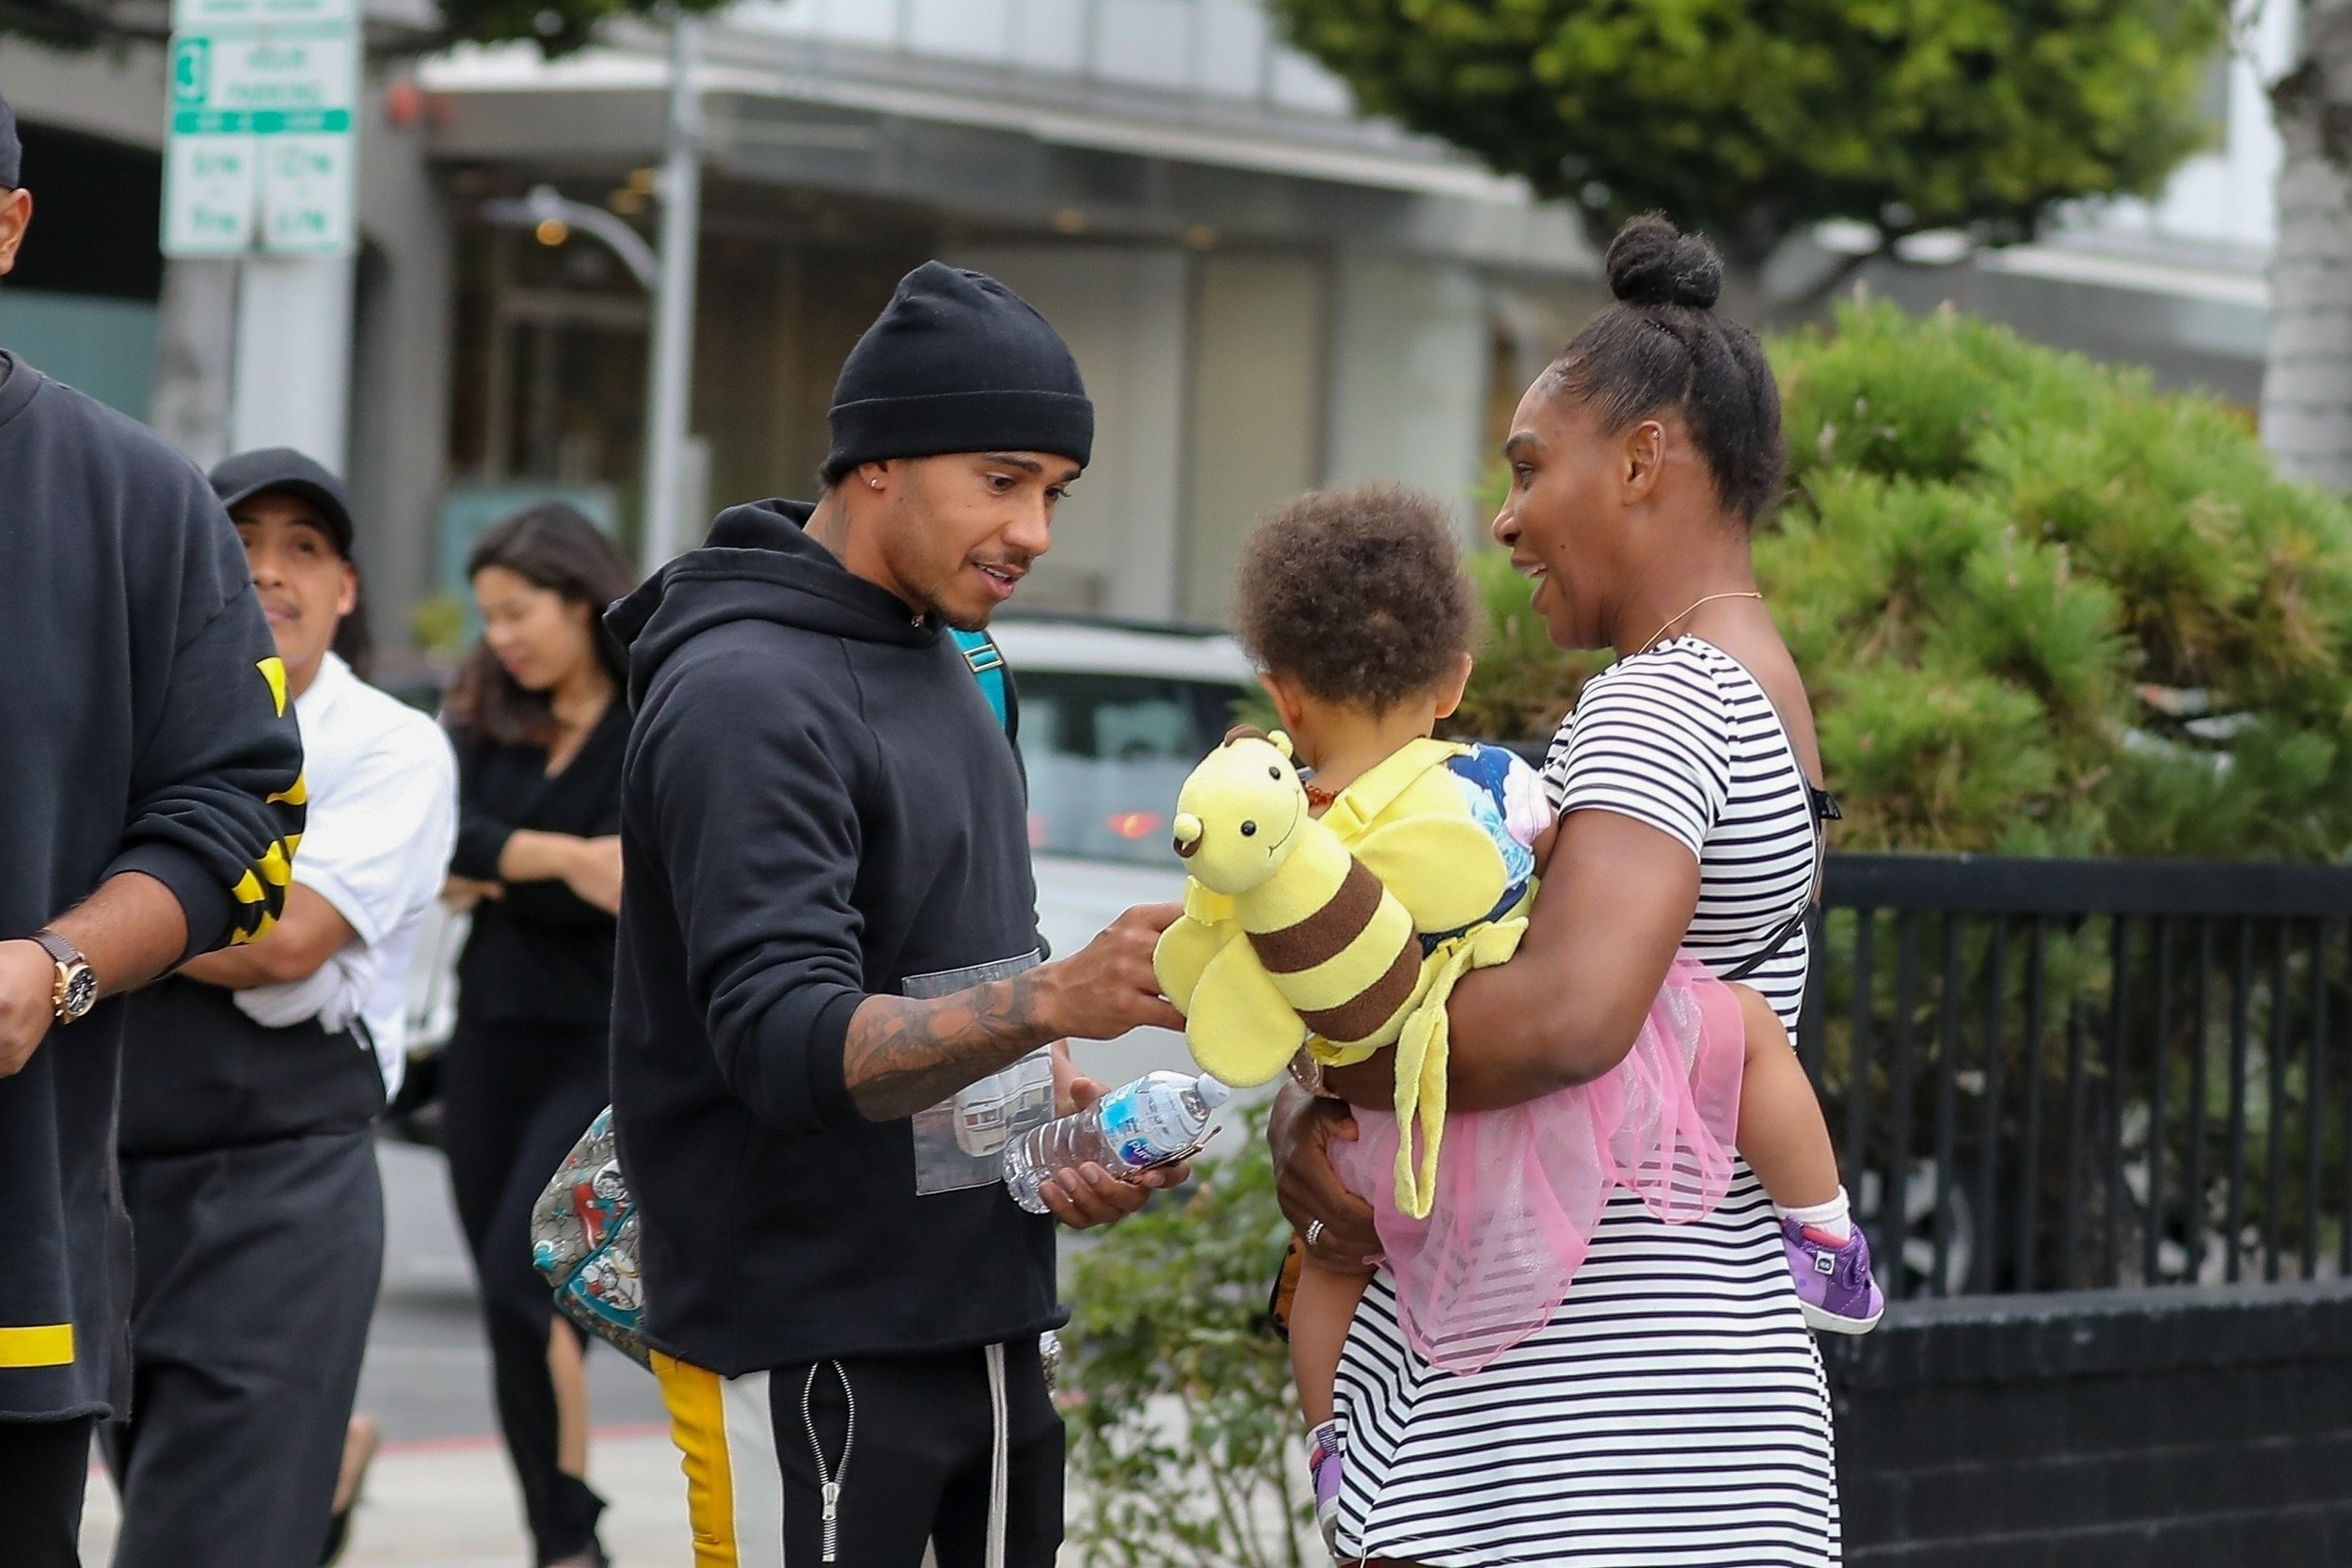 Beverly Hills, CA - *EXCLUSIVE* Serena Williams and Lewis Hamilton bump into each other while shopping at XIV Karats, Ltd in Beverly Hills. Serena carries her daughter Alexis on her hip as she chats with the race car driver on the way back to their cars. Pictured: Serena Williams, Lewis Hamilton, Alexis Olympia Ohanian Jr. BACKGRID USA 29 JANUARY 2019 USA: +1 310 798 9111 / usasales@backgrid.com UK: +44 208 344 2007 / uksales@backgrid.com *UK Clients - Pictures Containing Children Please Pixelate Face Prior To Publication*